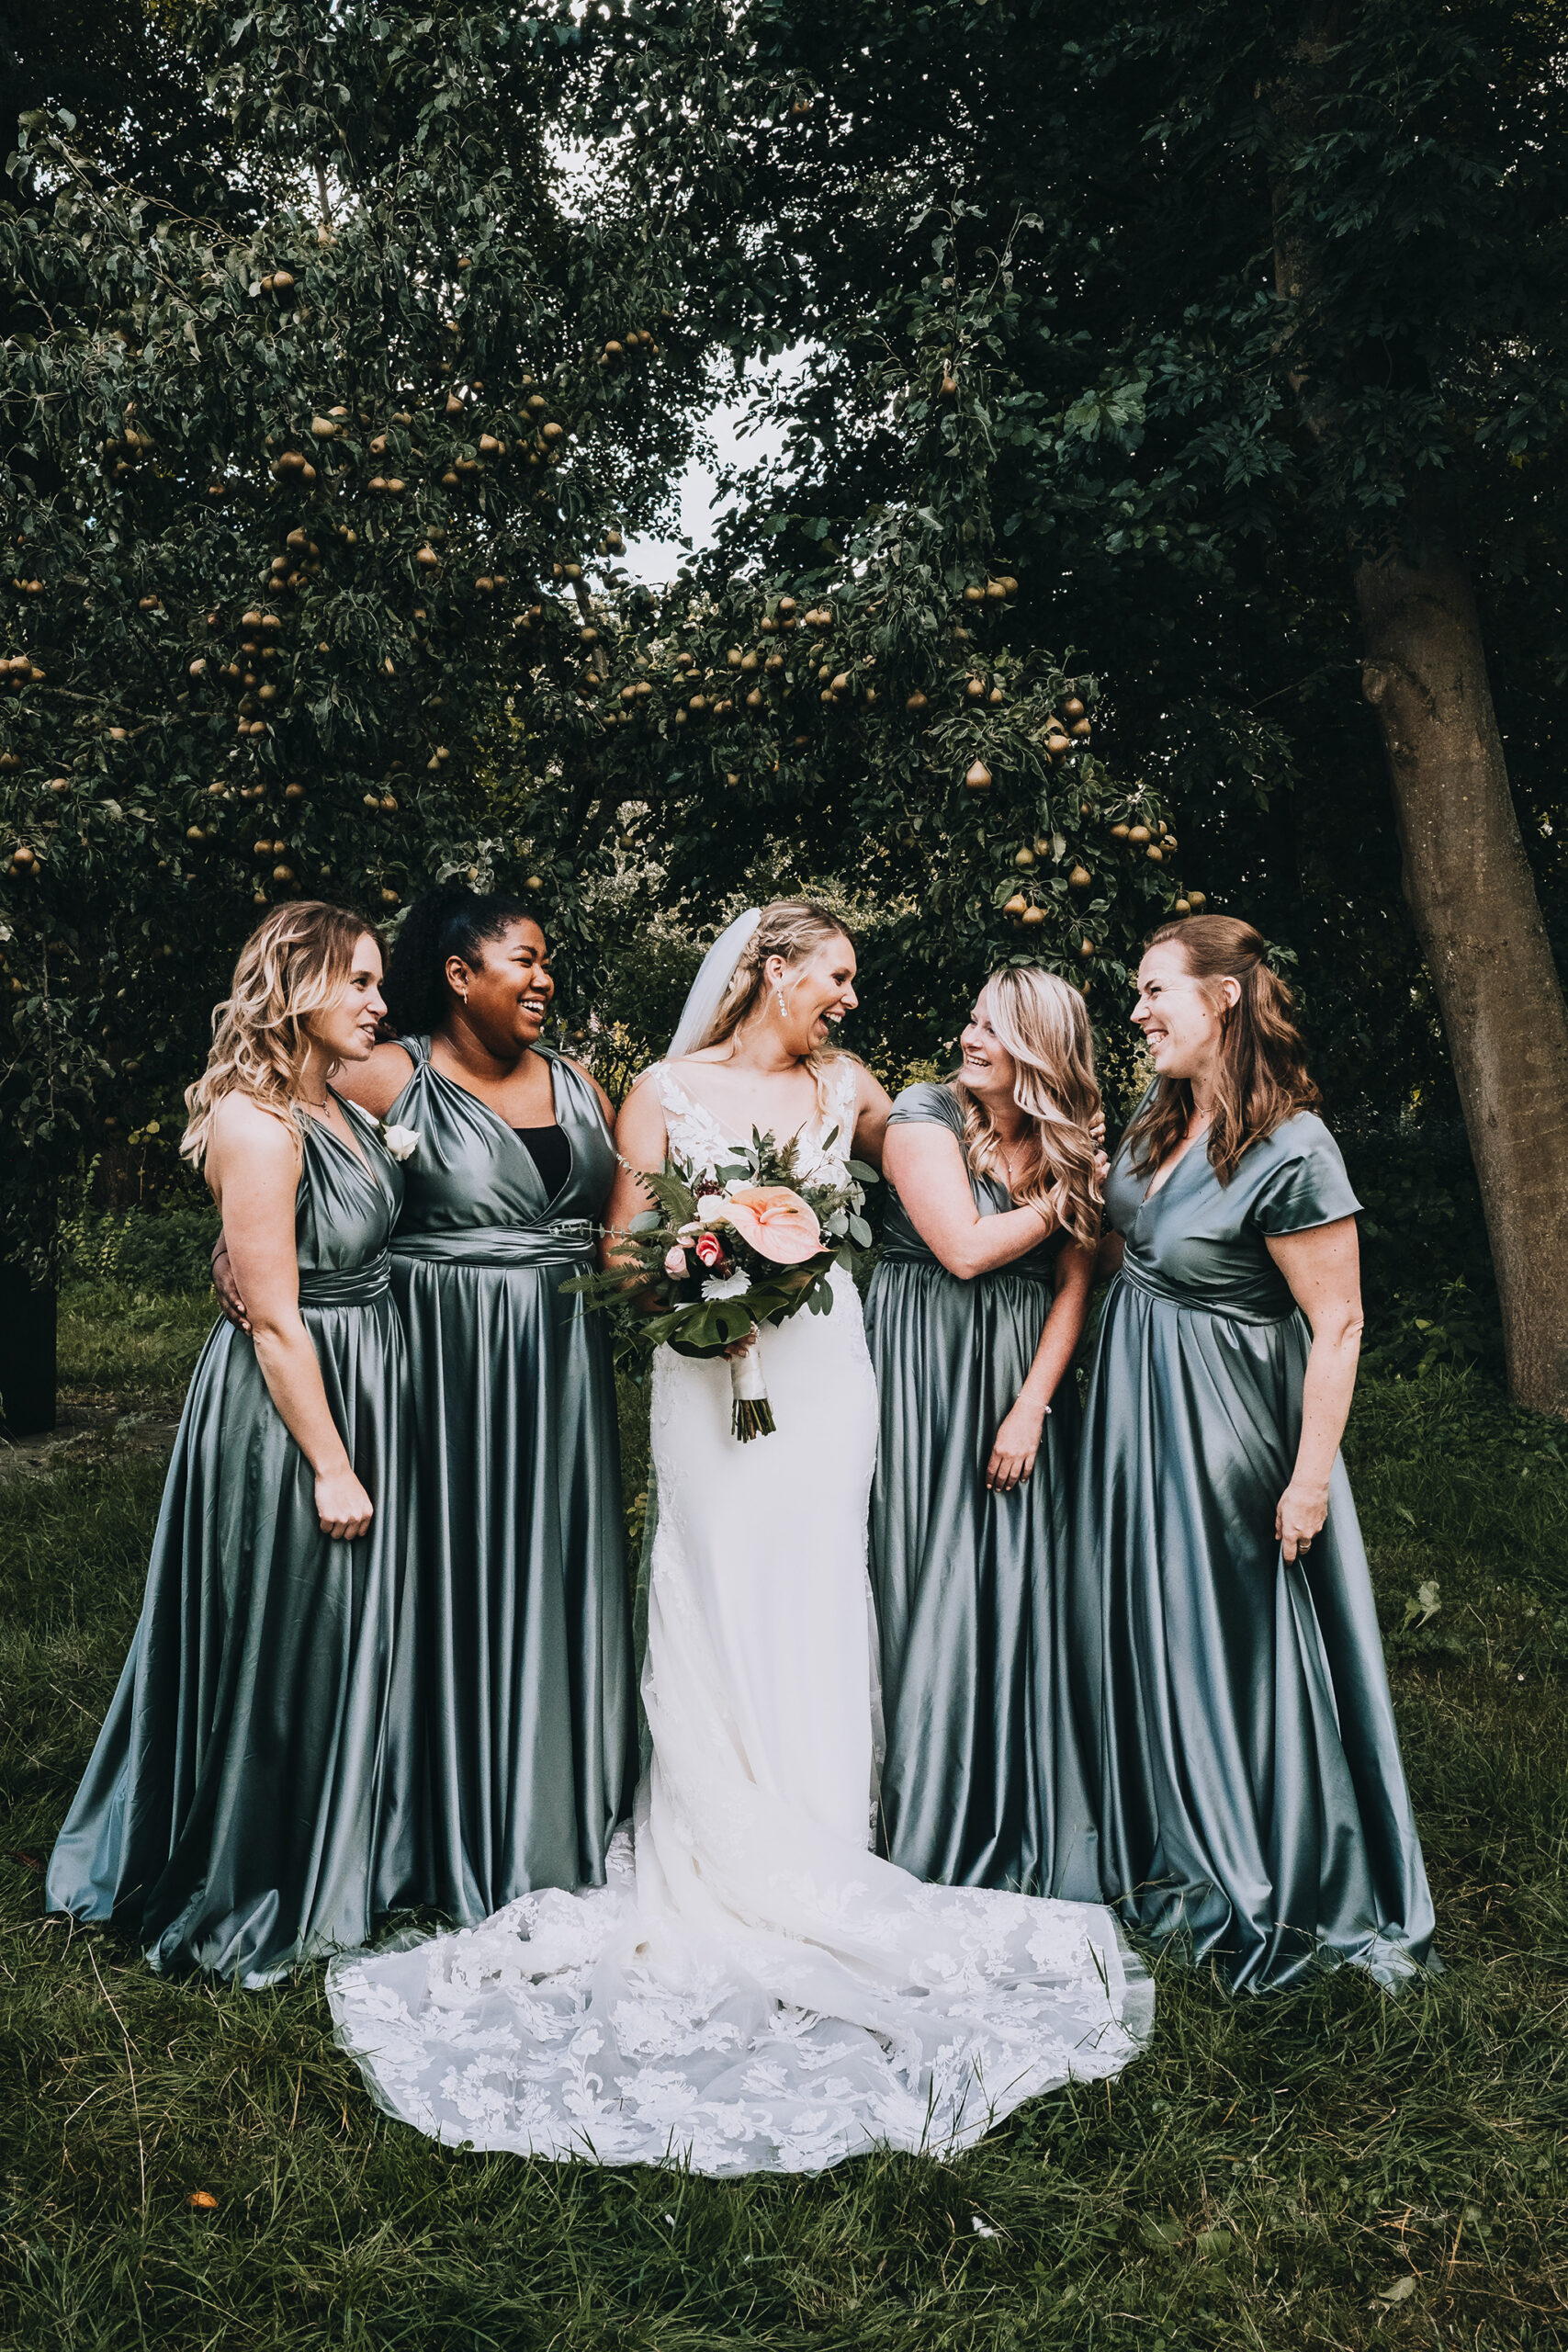 Amsterdam Wedding Photographer   The Perfect Day